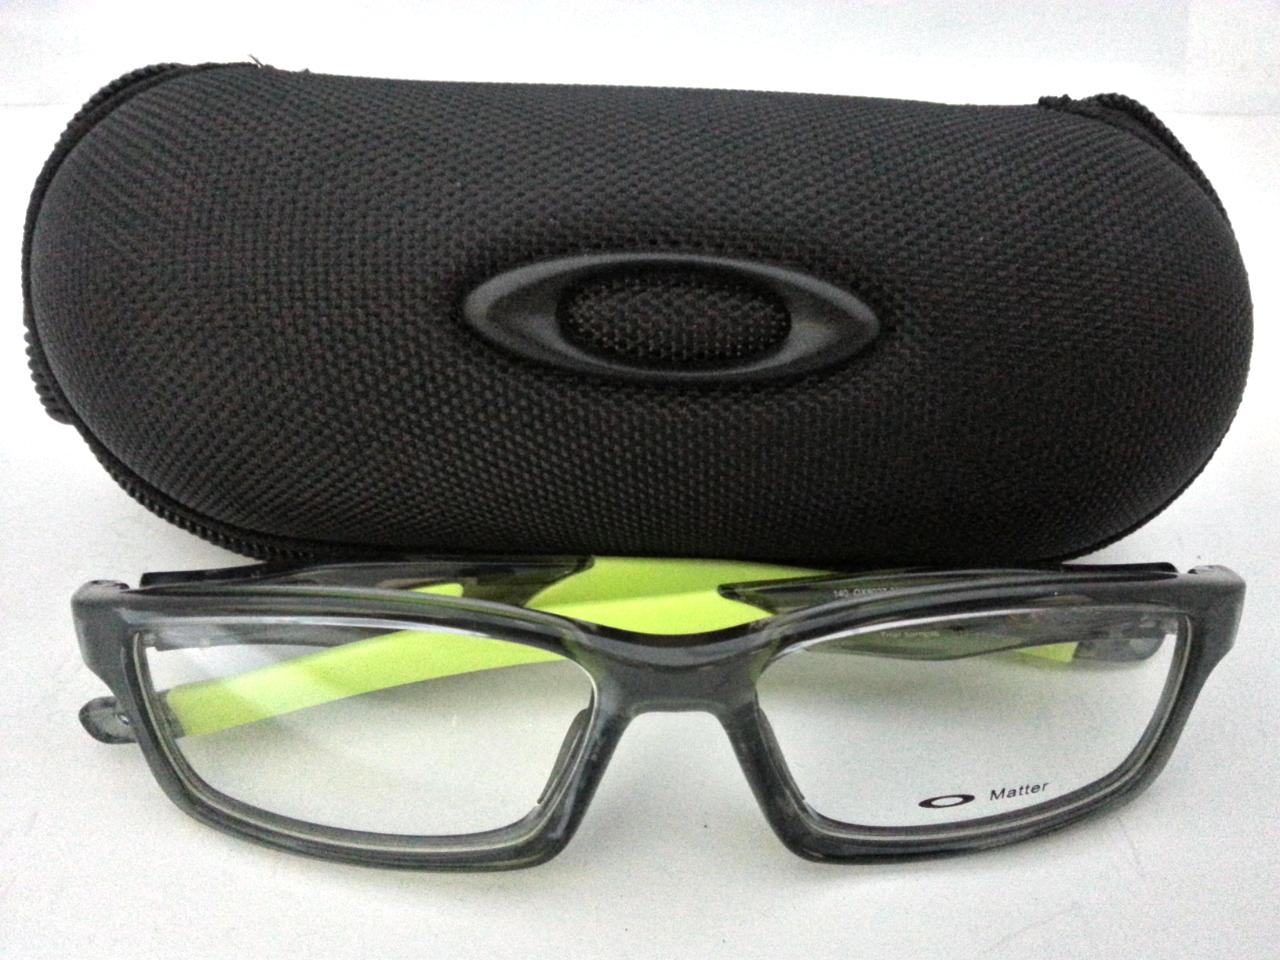 oakley rimless prescription glasses mbxb  oakley safety sunglasses ctxc oakley safety sunglasses